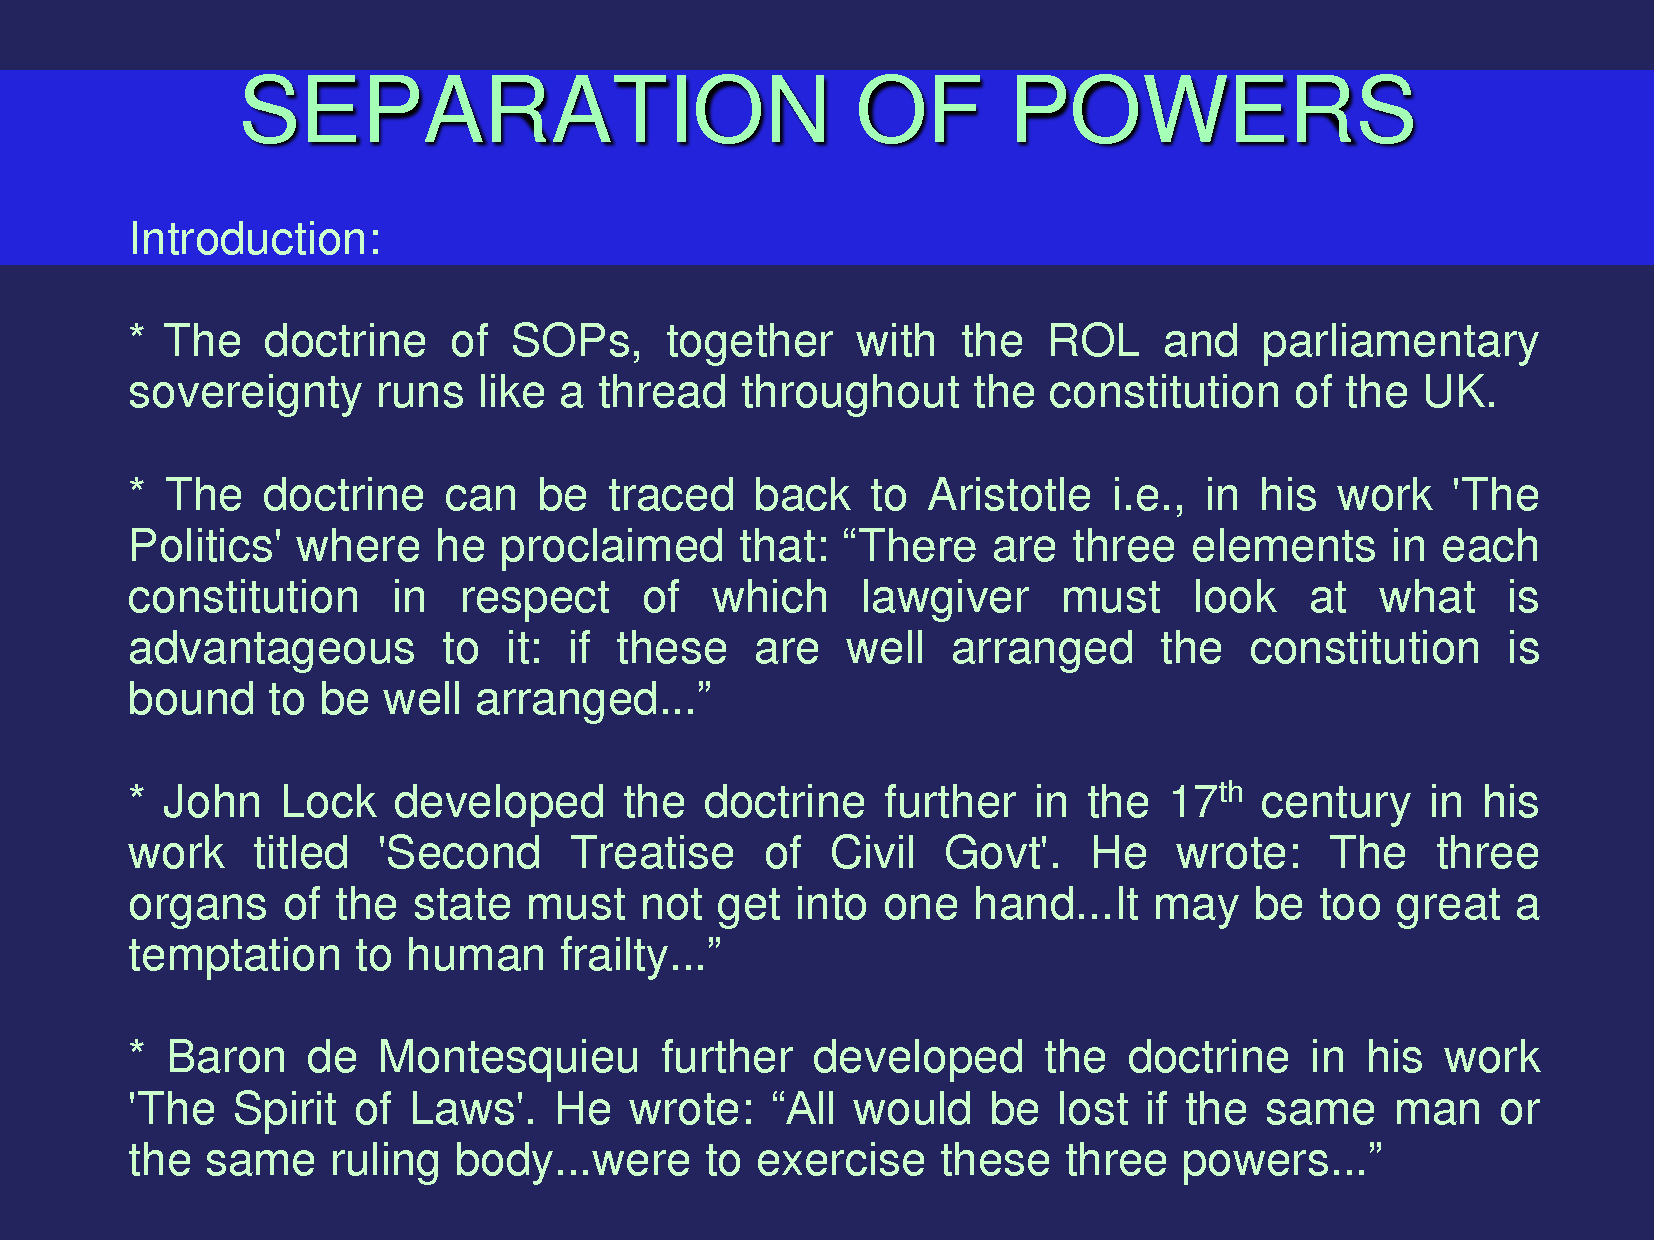 separation of powers Separation of powers understanding that a government's role is to protect  individual rights, but acknowledging that governments have historically been the .